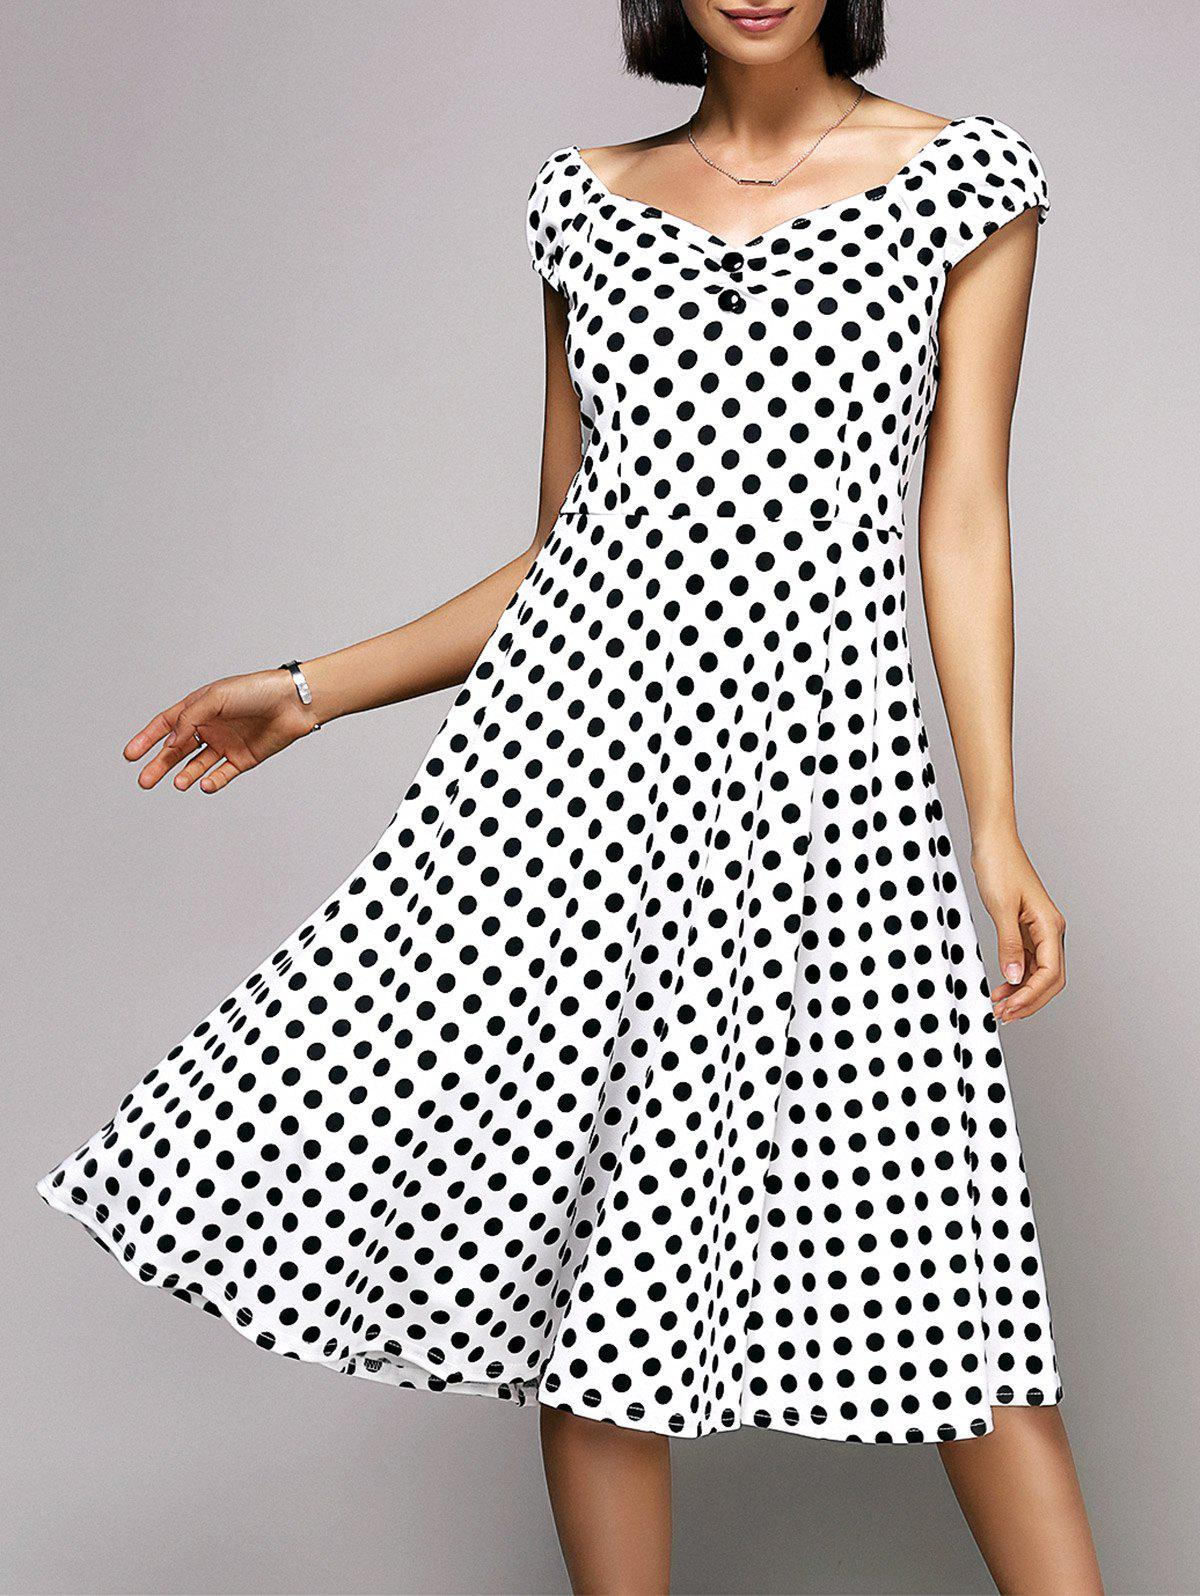 Stylish Women's V-Neck Cap Sleeve Polka Dot Midi Dress - WHITE 2XL